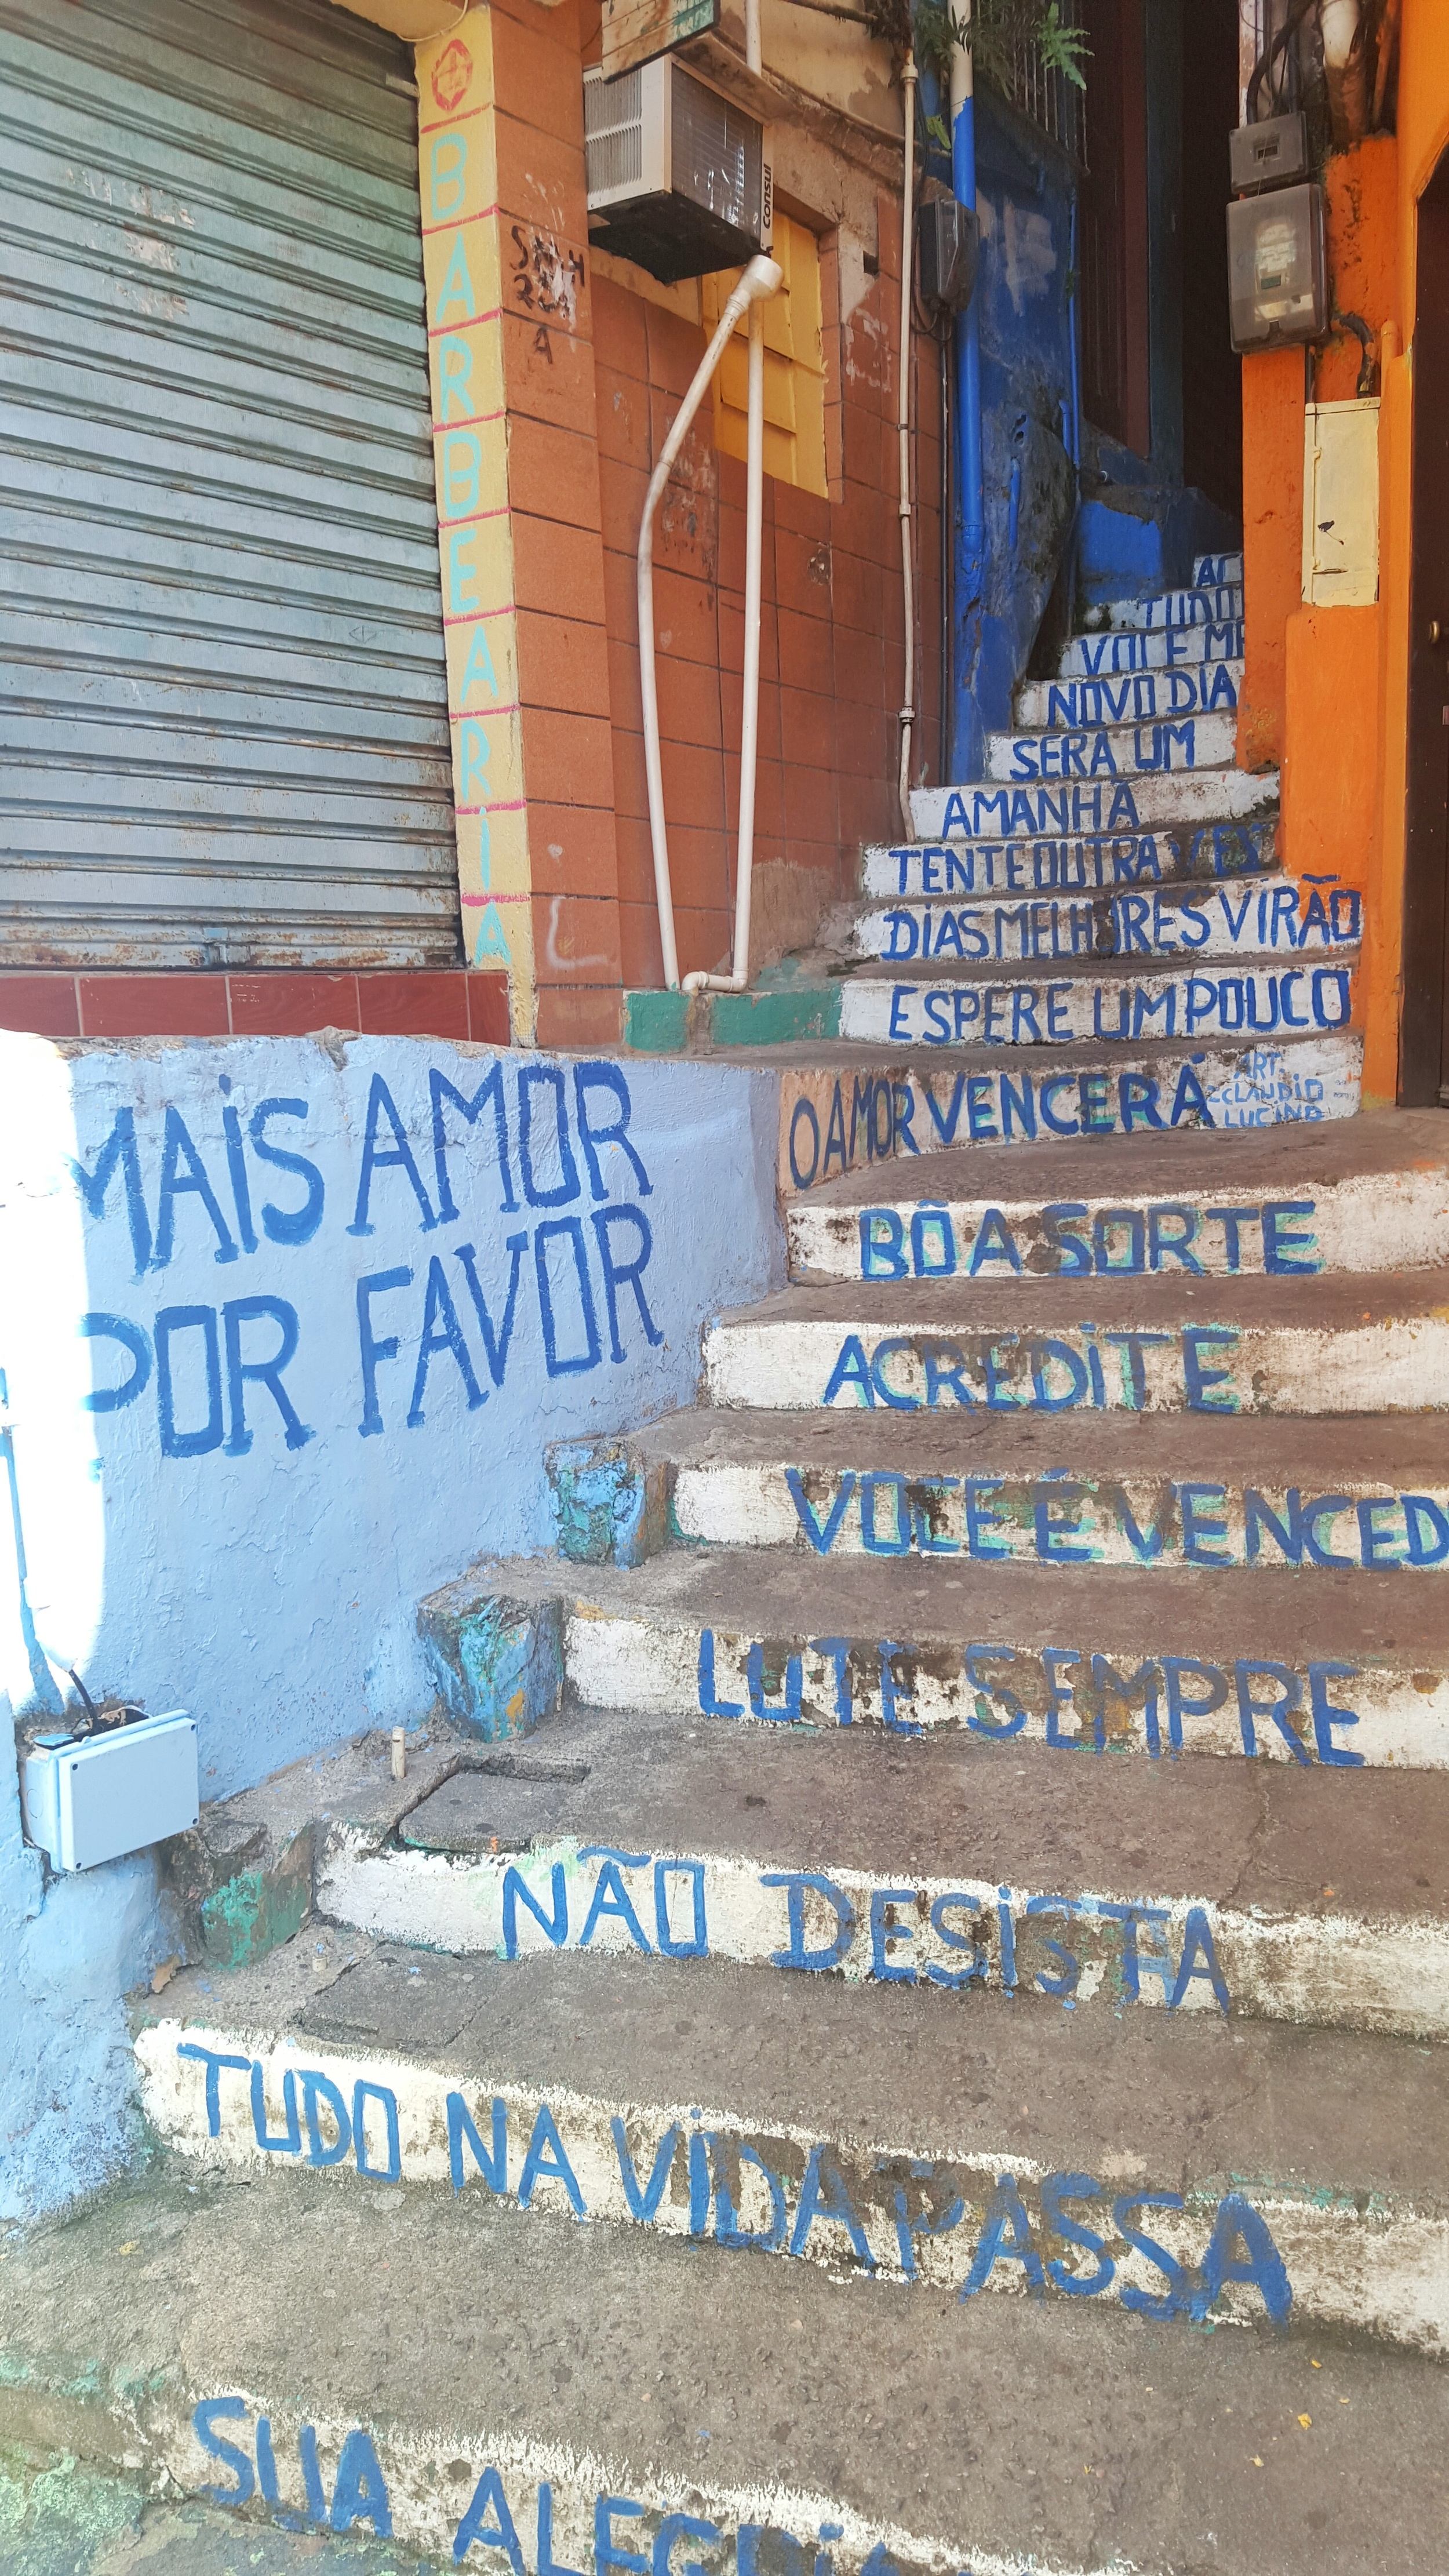 Inspirational stairs found in favela in Rio de Janeiro